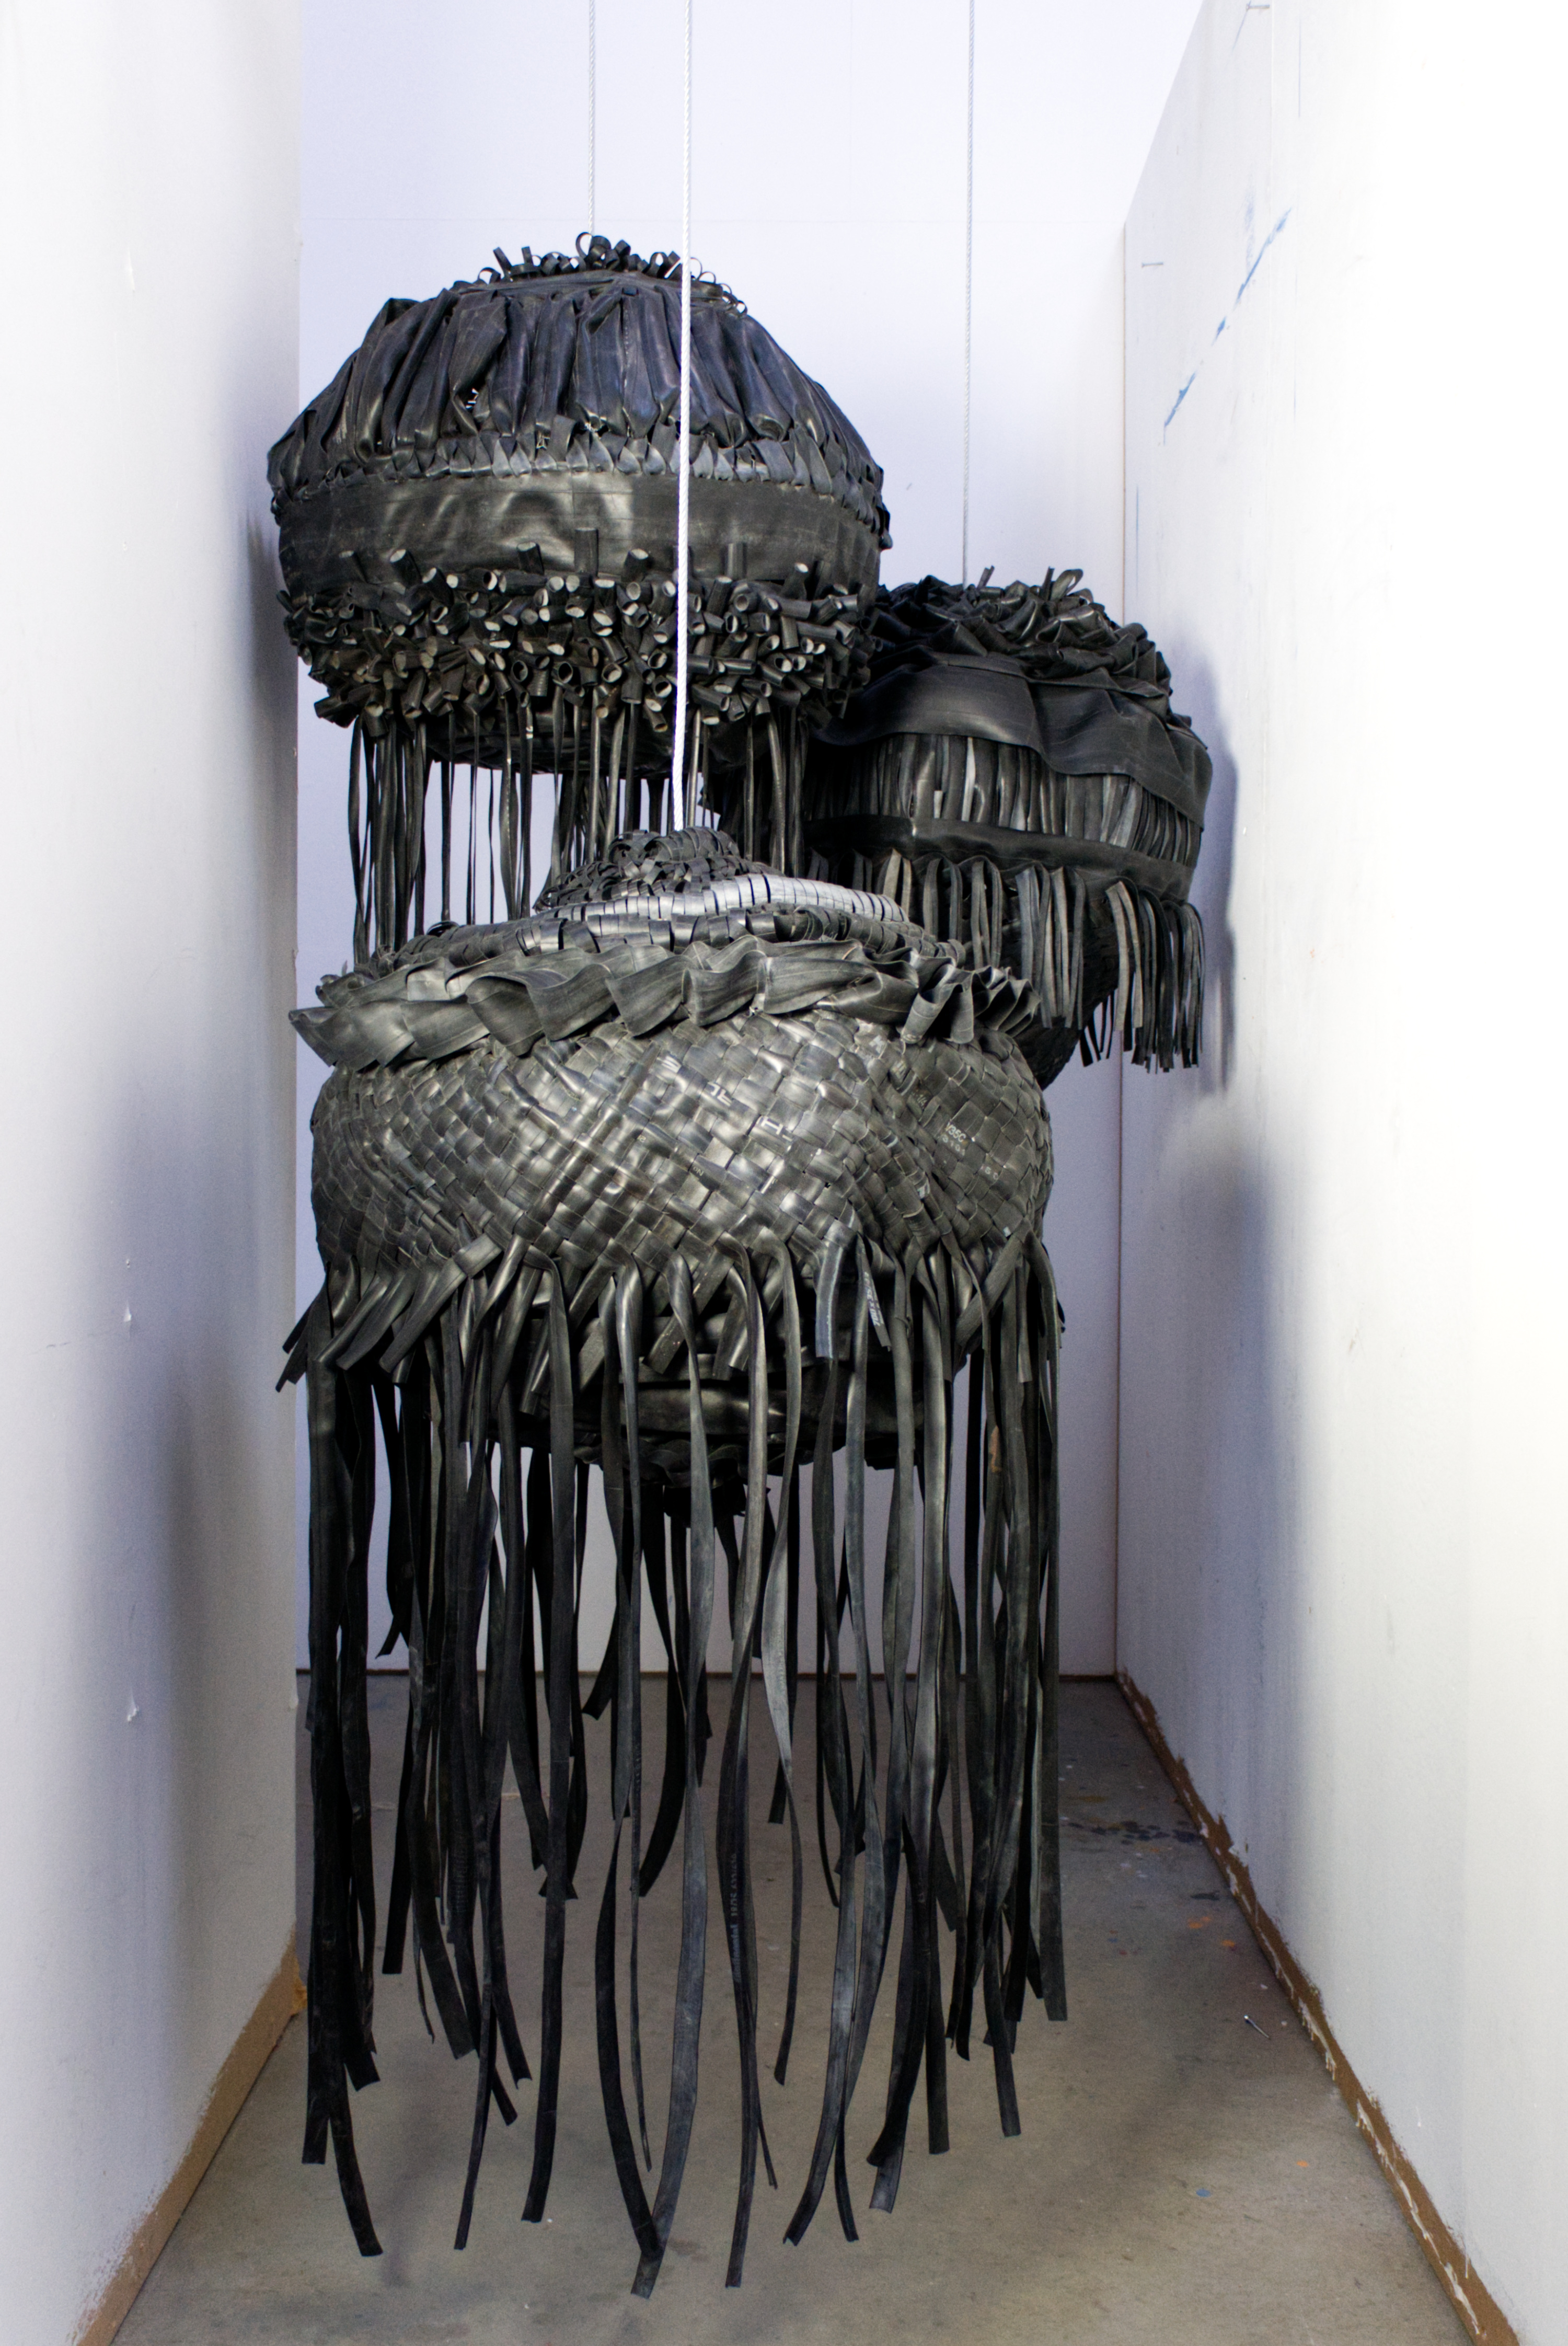 Suspended at different heights from metal wire, three sculptures made of black rubber are installed in a narrow corridor. The sculptures are black and highly textured from a variety of weaving, platting and knotting techniques. The light reflects from the smooth black rubber to inherence the textures. the three sculptures all have rubber tassels hanging from them.